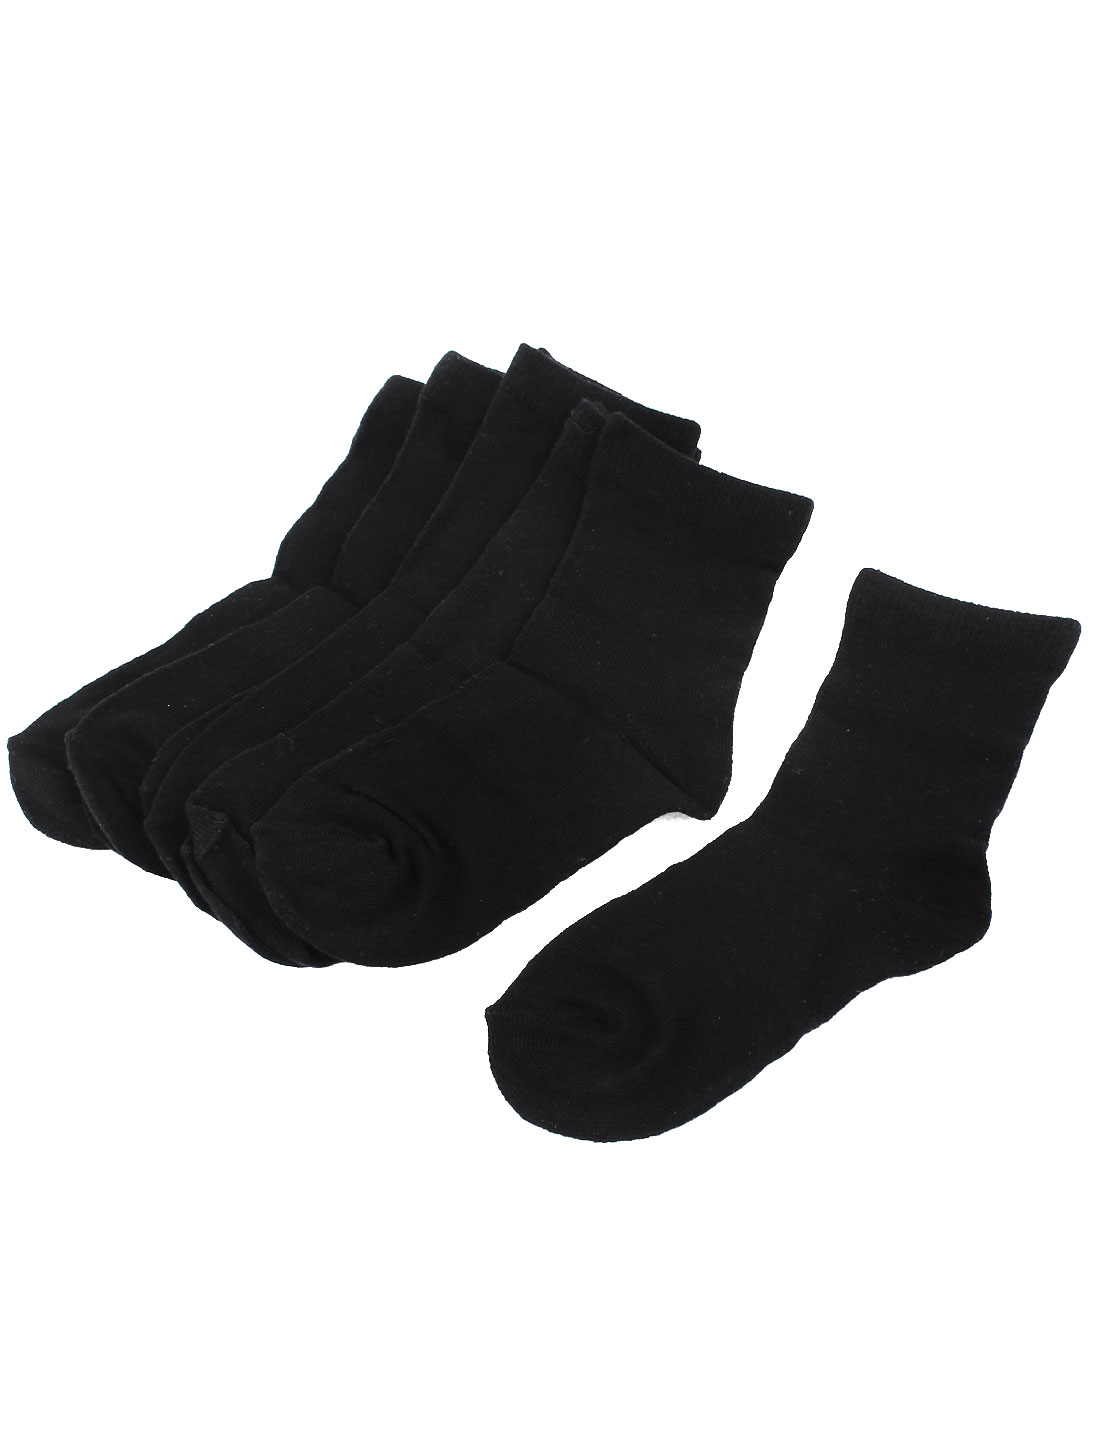 5Pairs Casual Black Cotton Blends Stretchy Cuff Ankle High Hosiery Socks Sockens for Boys